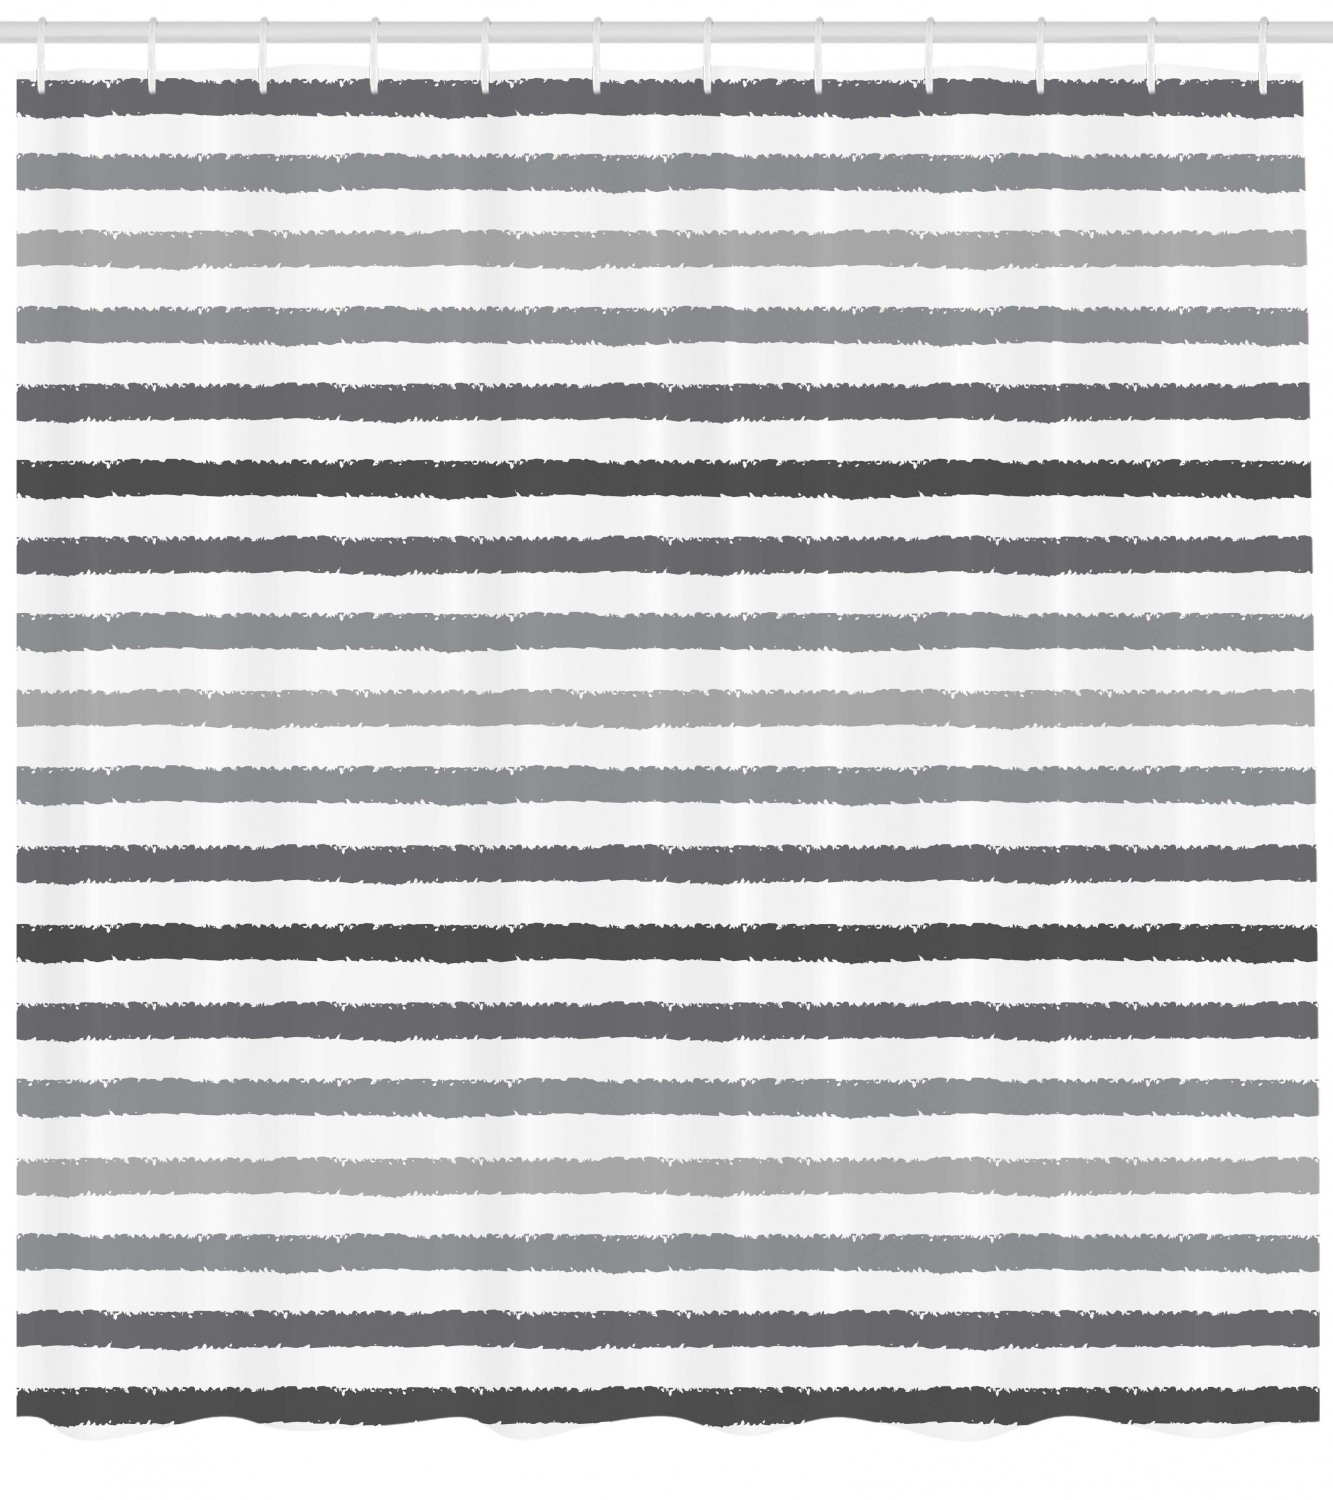 Striped Shower Curtain Gray And White Stripes Monochrome Tone Brush Style Lines Grunge Retro Digital Print Fabric Bathroom Set With Hooks White